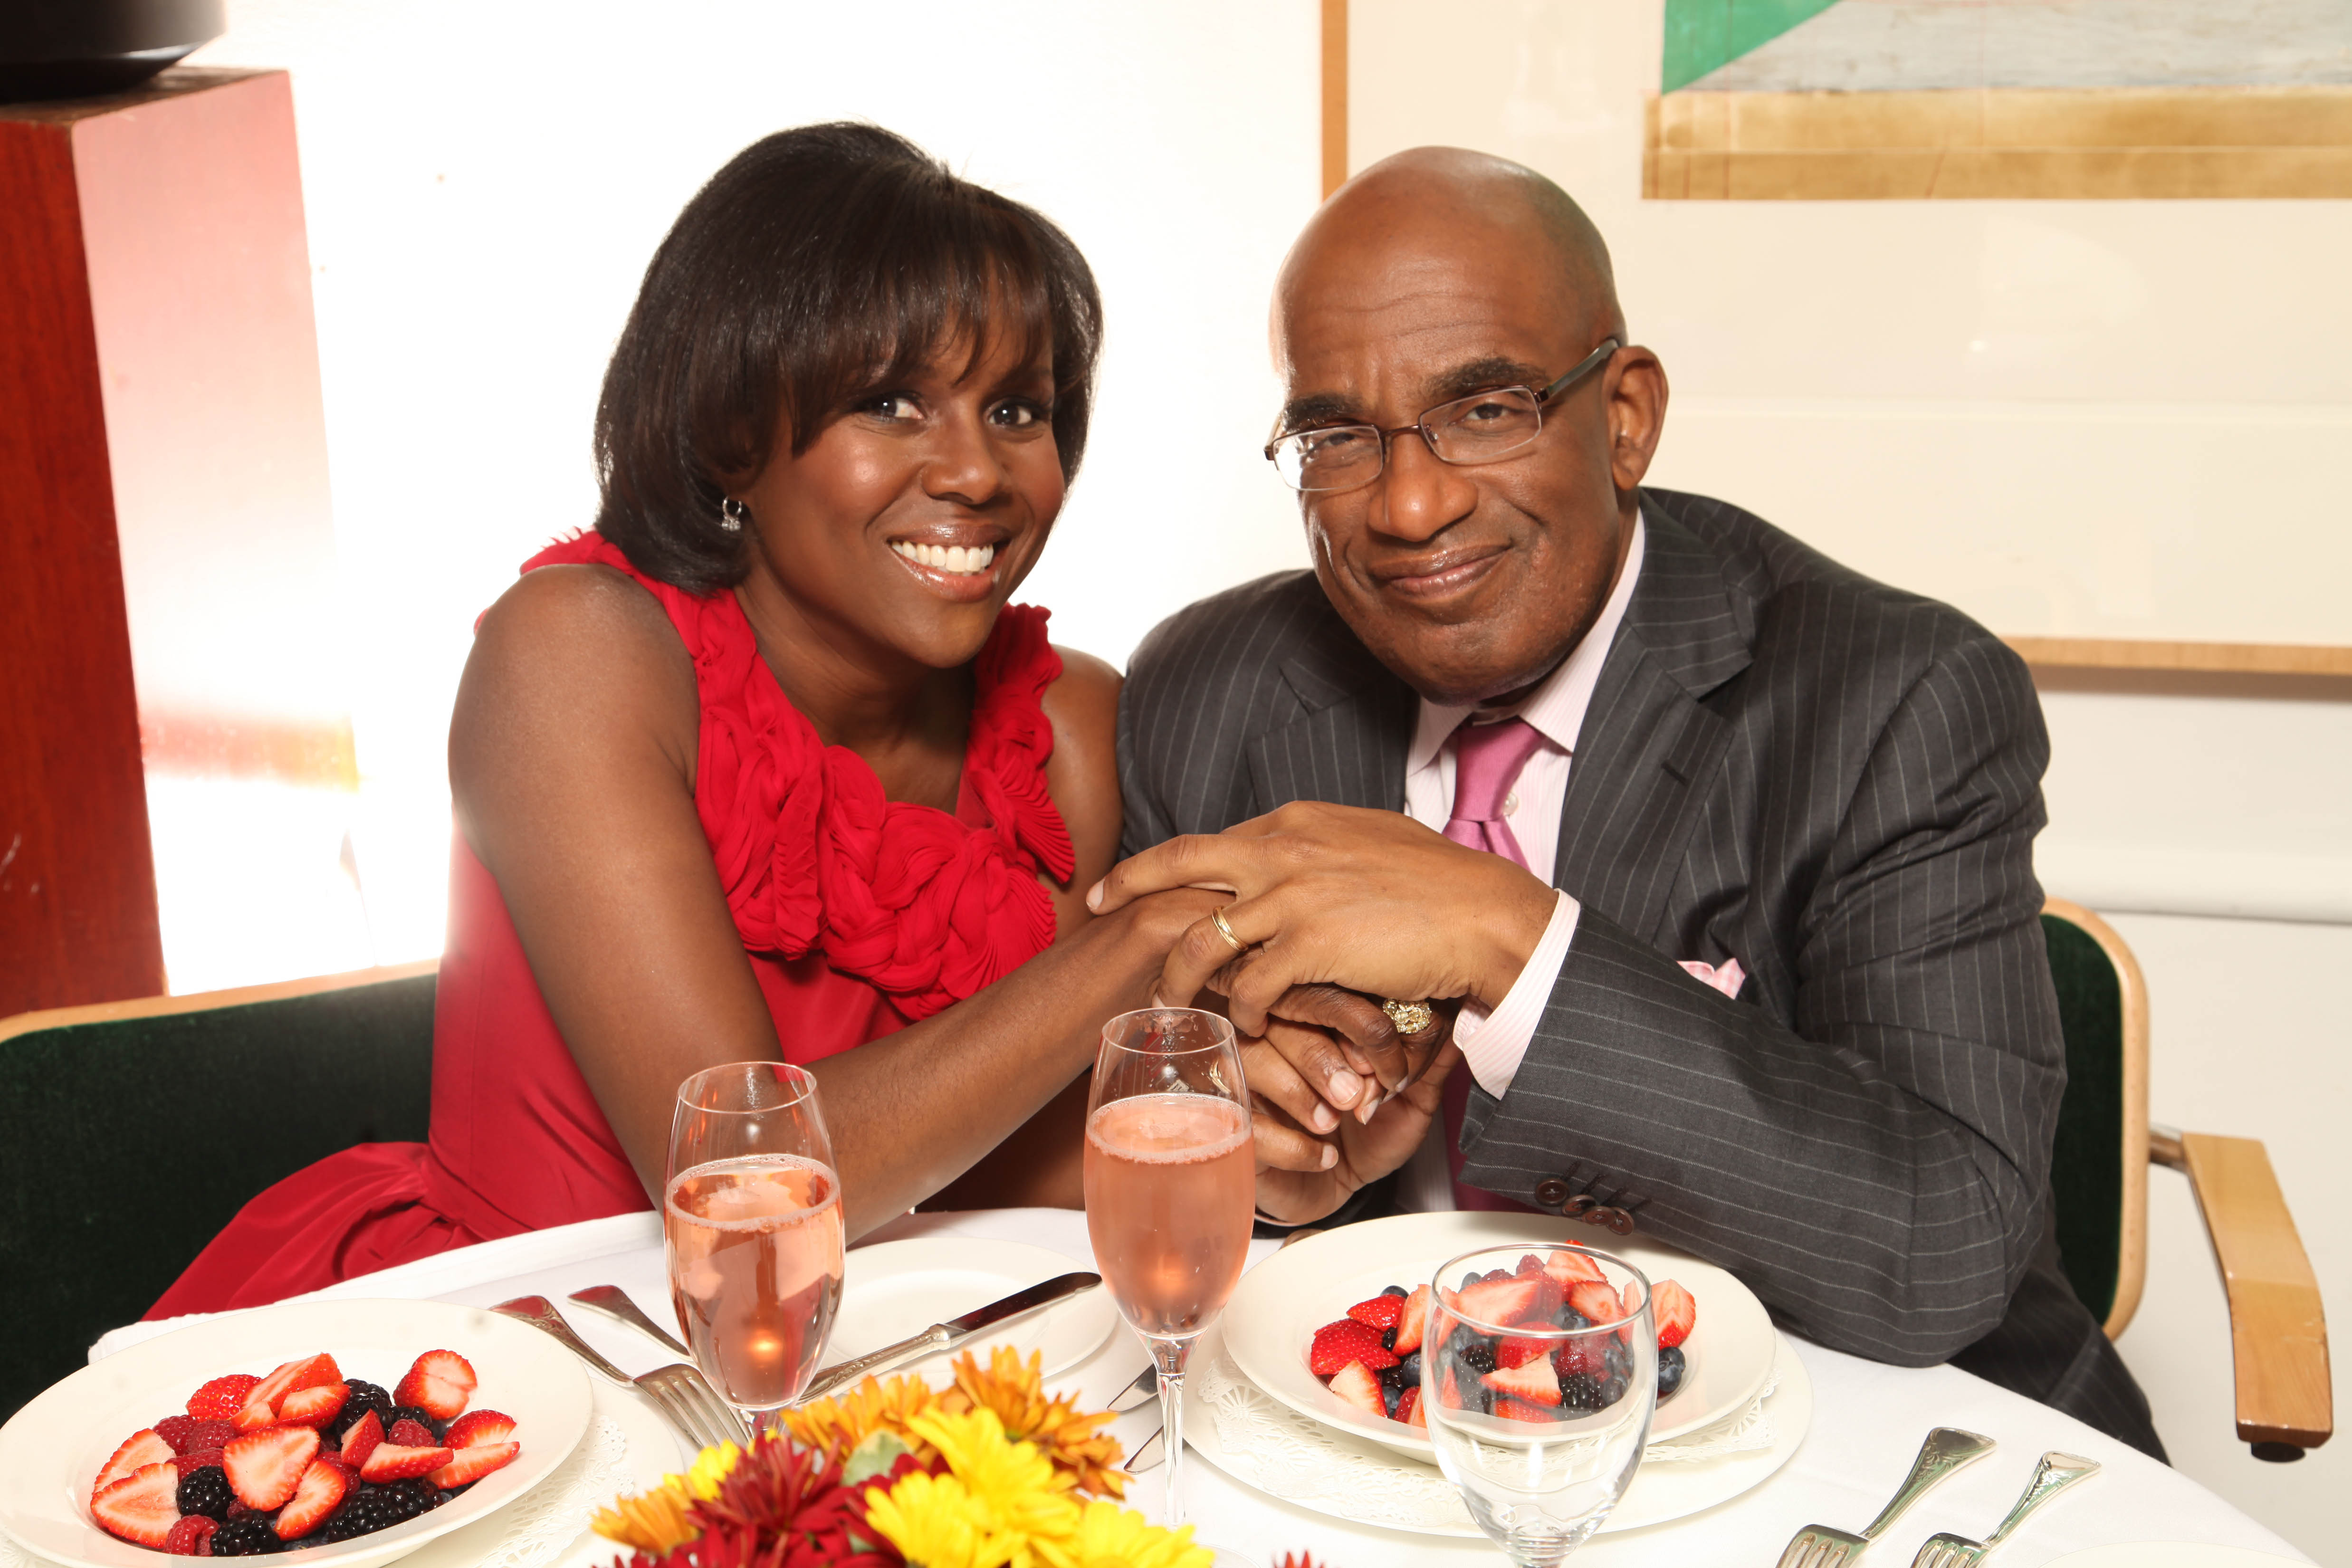 Deborah Roberts and her husband Al Roker in New York, 2010 | Source: Getty Images